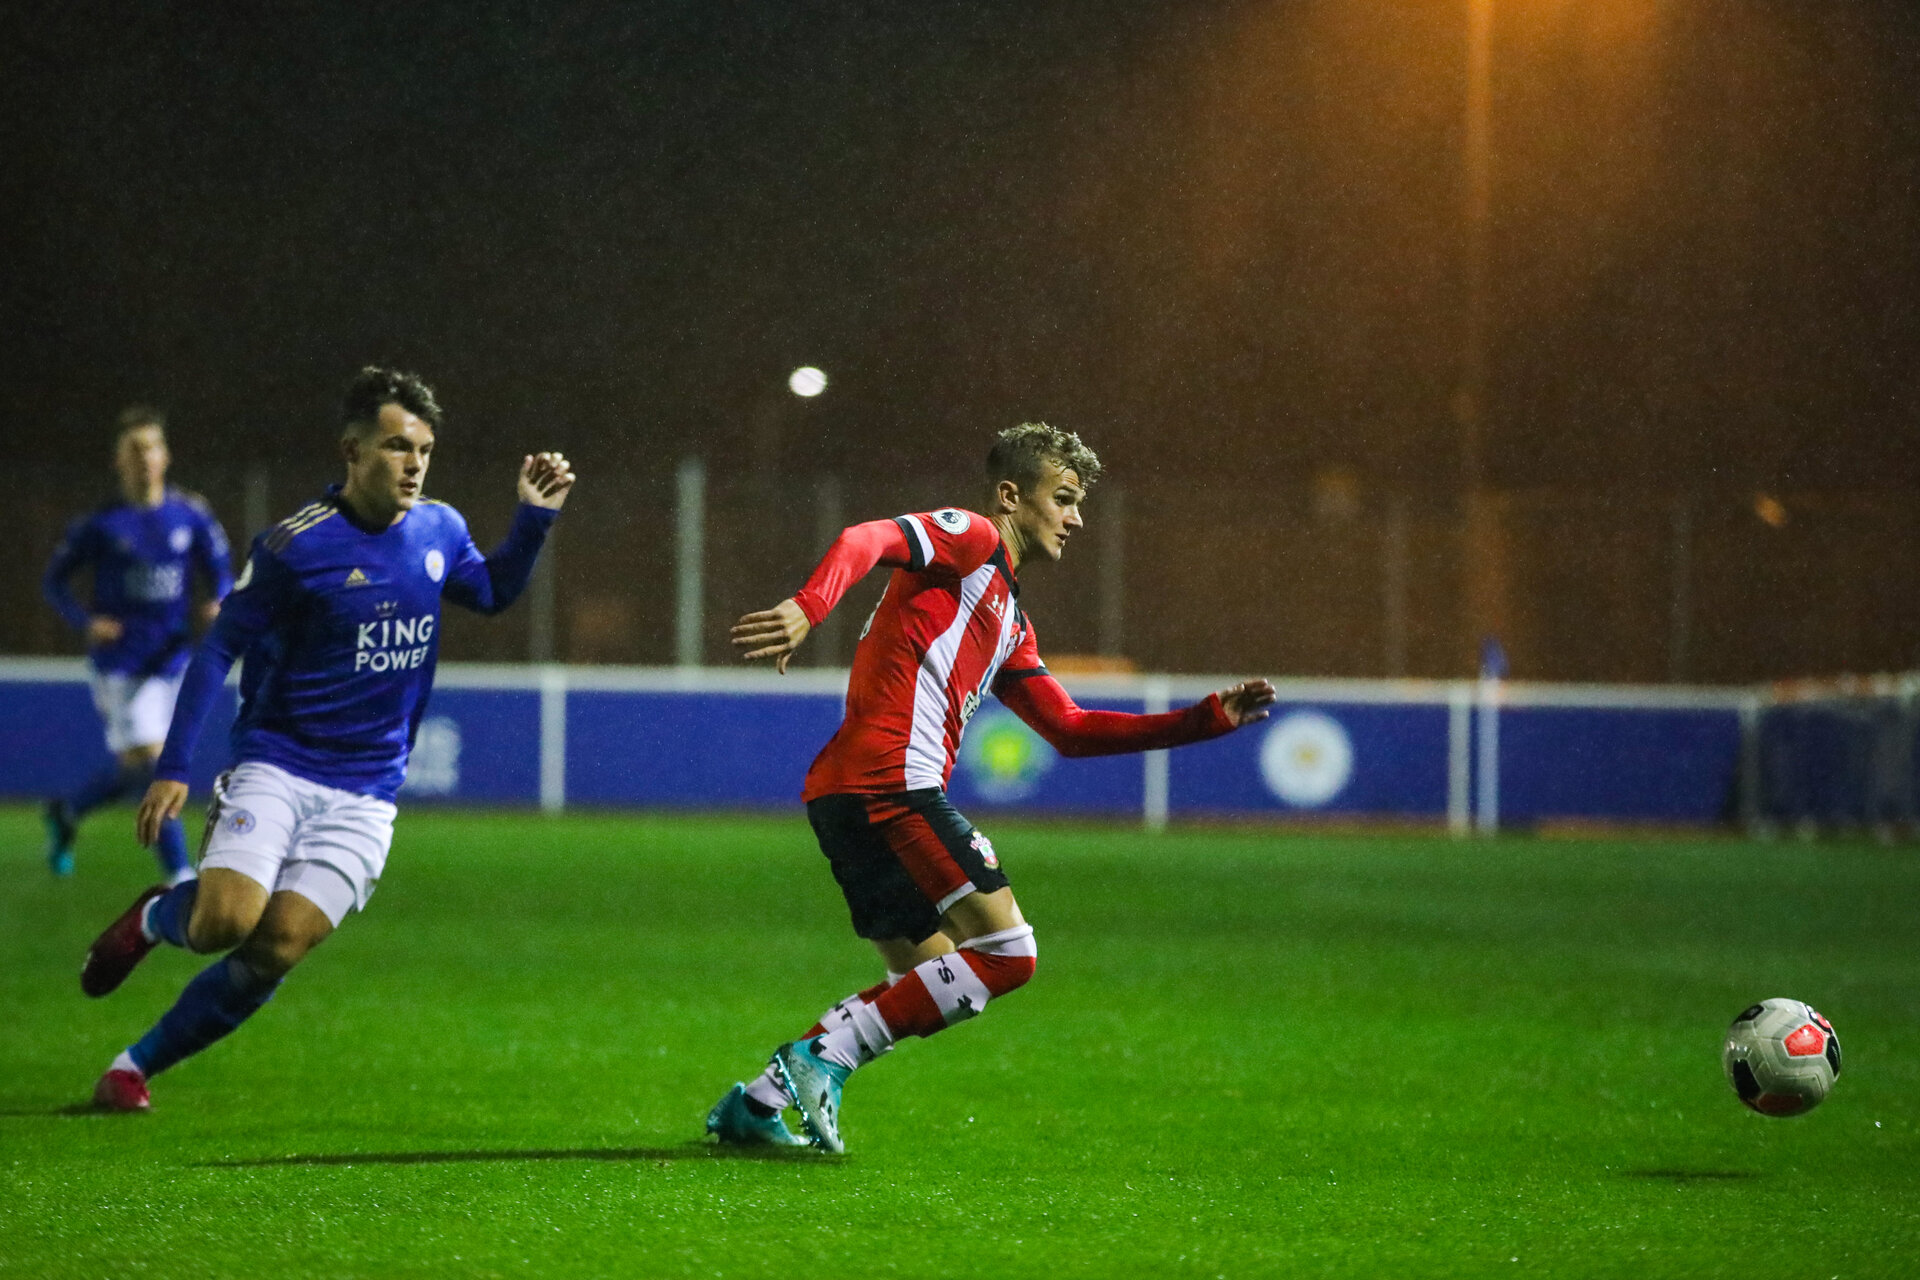 LEICESTER, ENGLAND - OCTOBER 25: Kornelius Hansen of Southampton FC during the Premier League 2 match between Leicester City and Southampton FC at Holmes Park on October 25, 2019 in Leicester, England